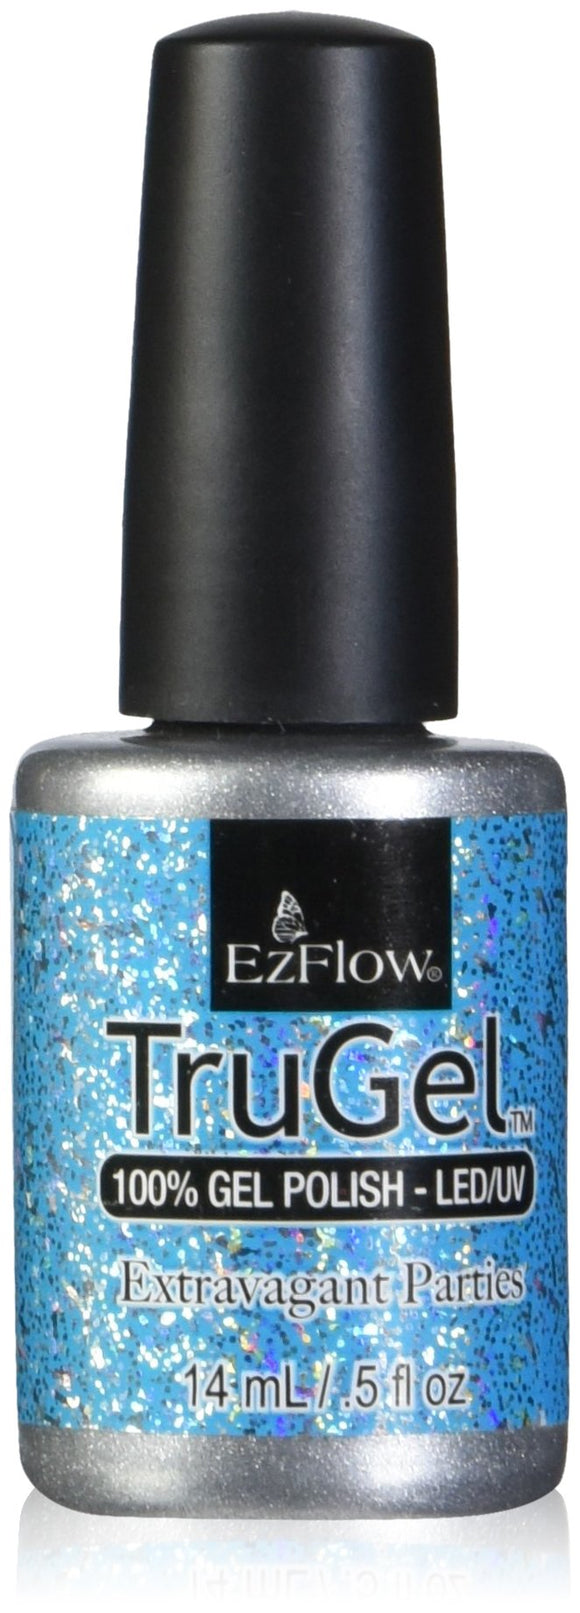 Ez Flow TruGel LED/UV Gel Polish - 14 mL (Extravagant Parties - EZTG42334)